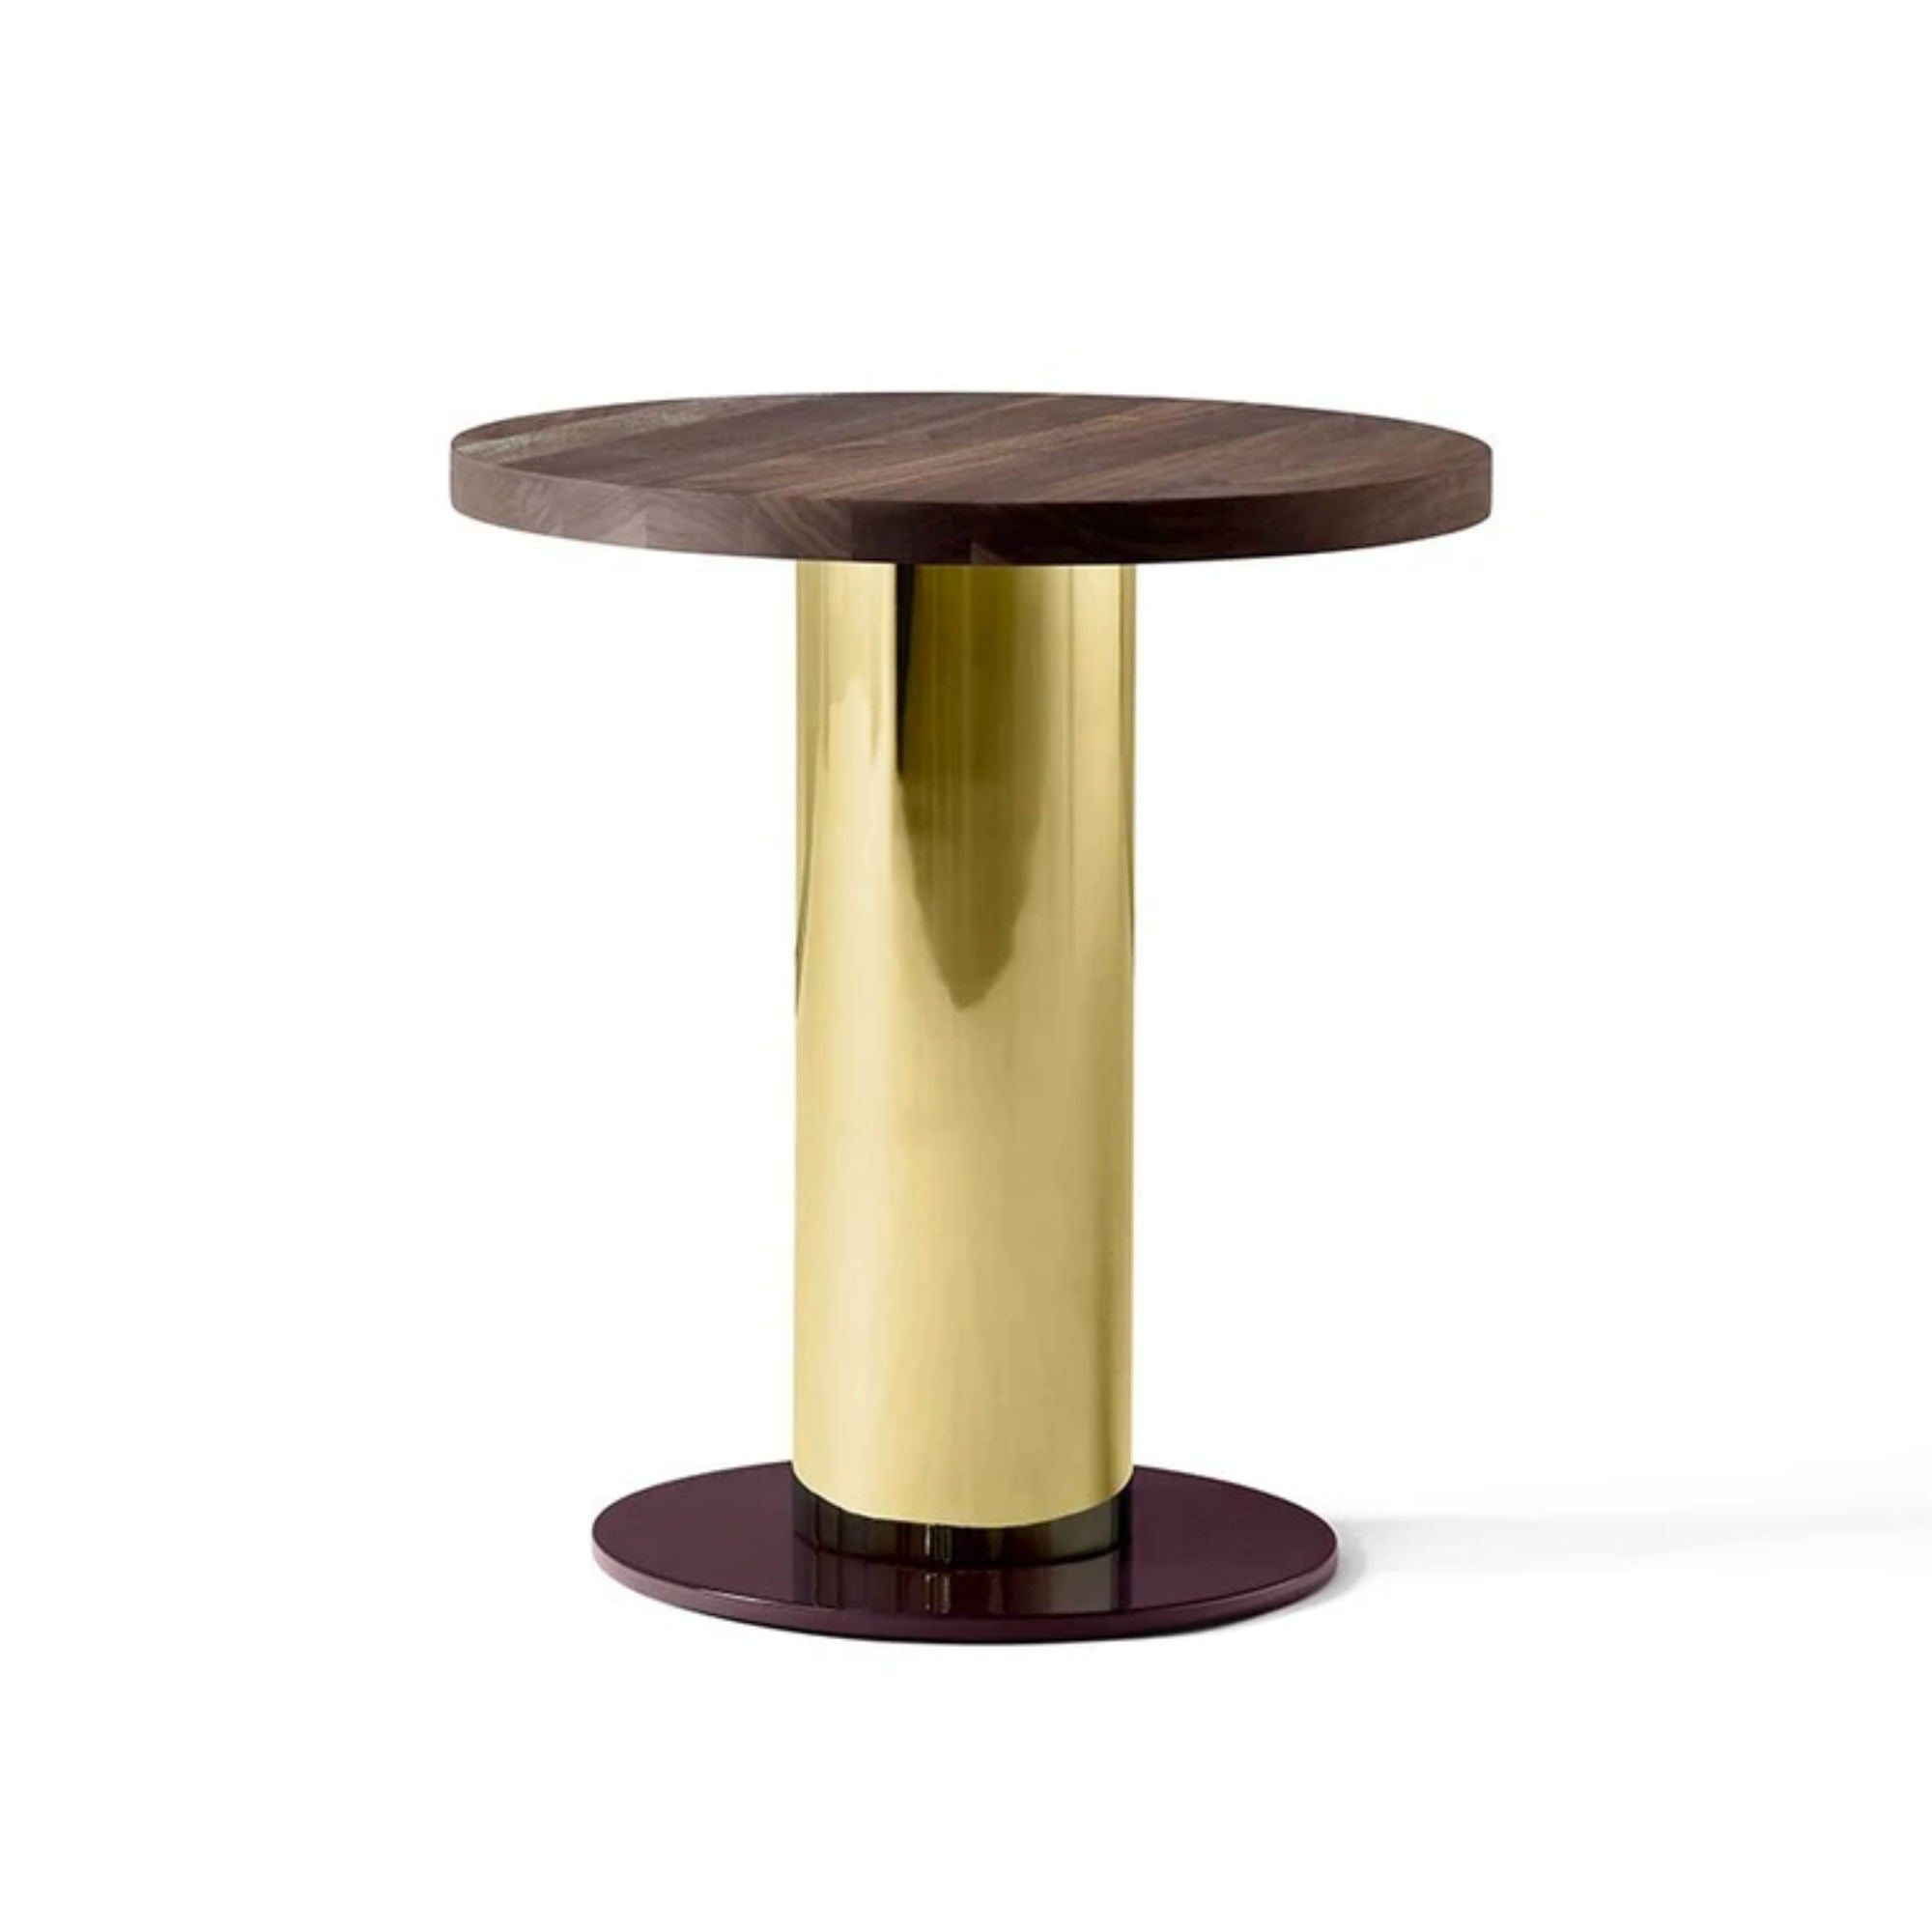 &Tradition JH19 Mezcla Side Table Ø42 , Walnut/Brass/Burgundy